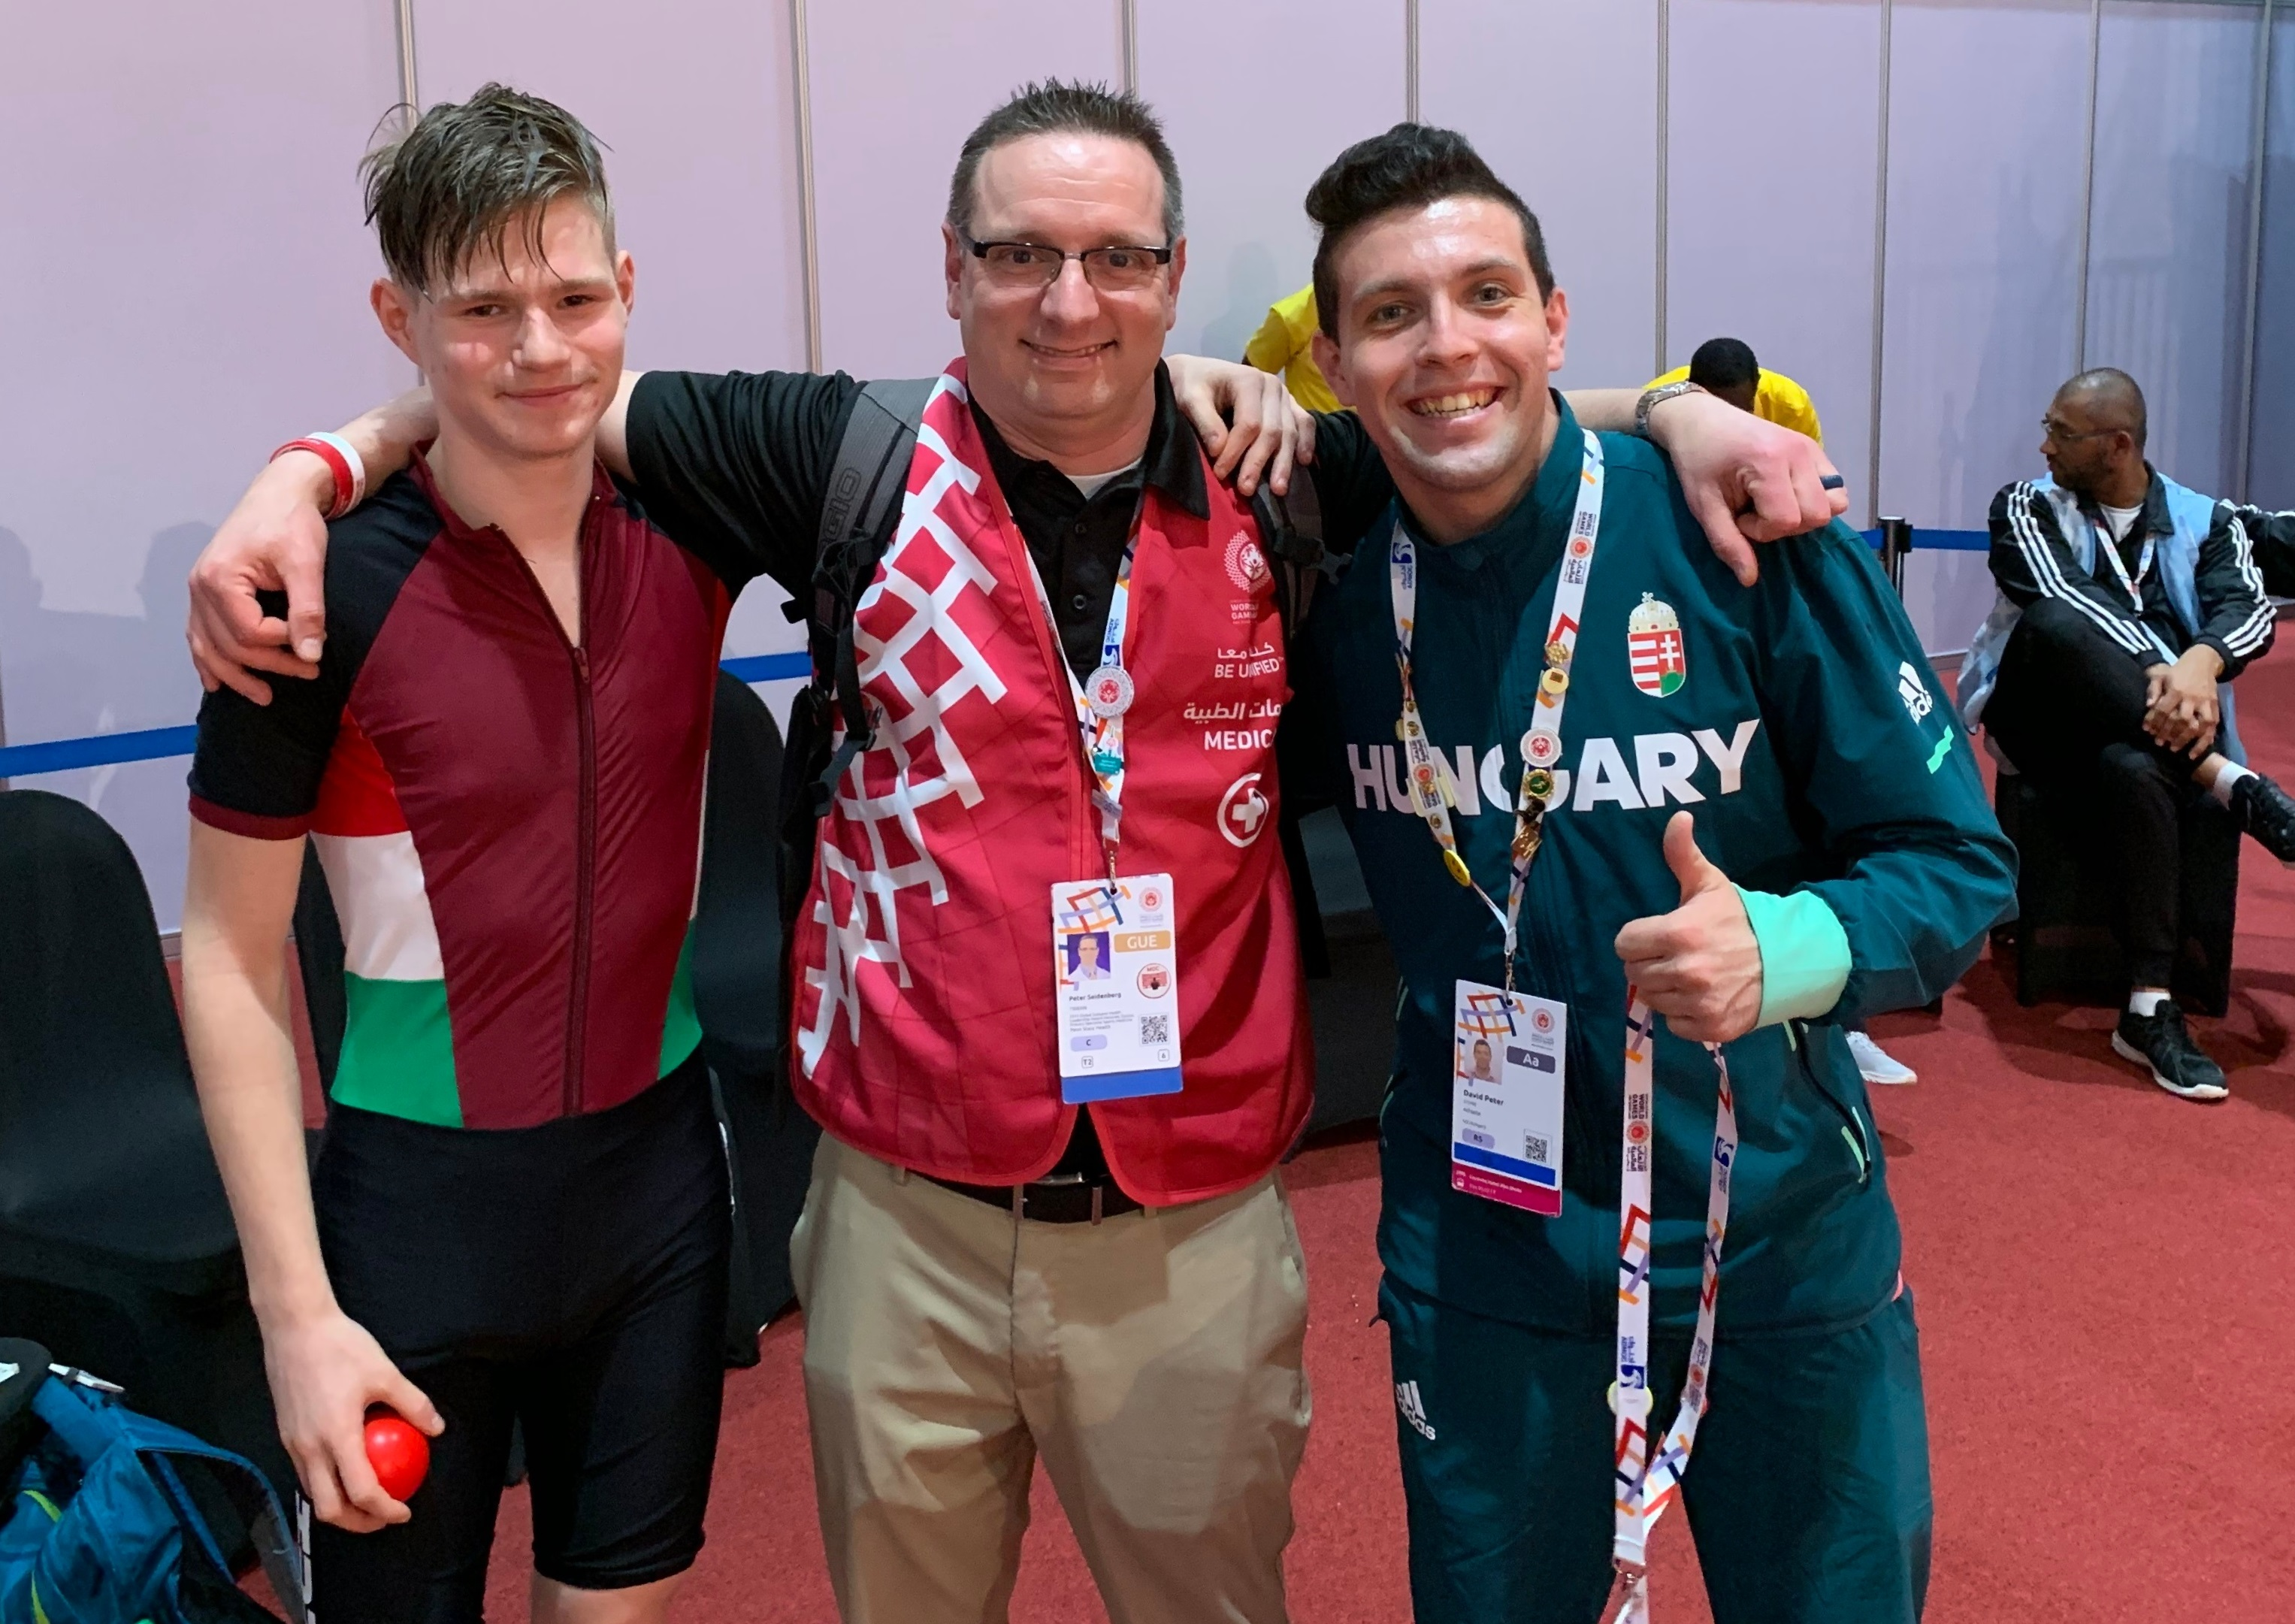 "Dr. Peter Seidenberg poses for a photo with two young men who are members of the Hungarian roller skating team. He is wearing a red vest with ""Medic"" on the right side. The player on the left is wearing a spandex suit with shorts. The player on the right is wearing a sweatshirt with ""Hungary"" on the front. Behind them are three players. One is sitting on a chair."